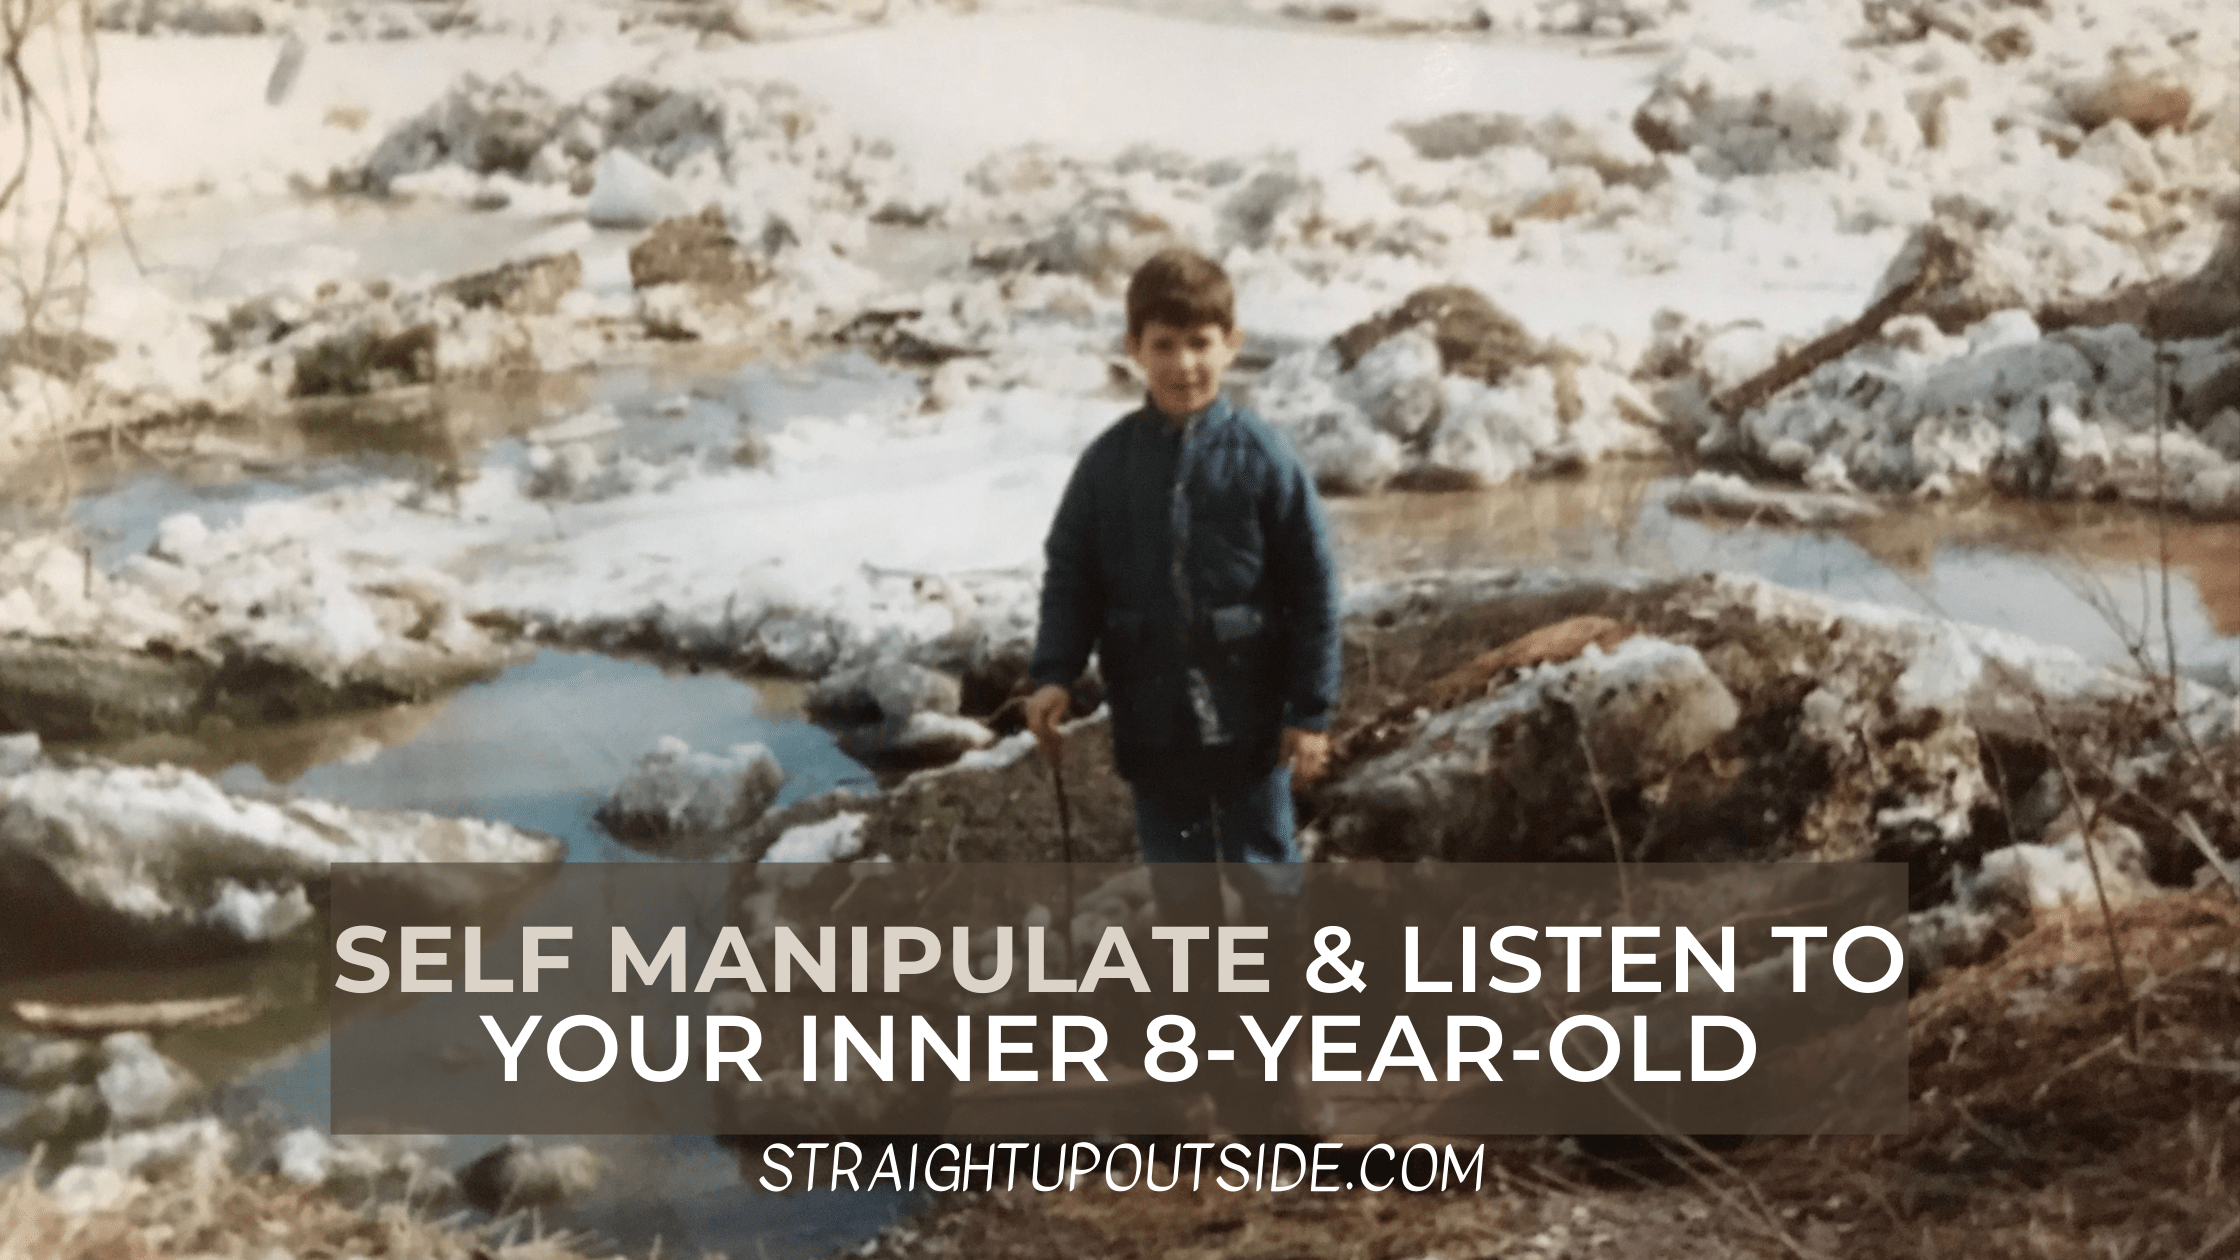 Self Manipulate and Listen to Your Inner 8-Year-Old